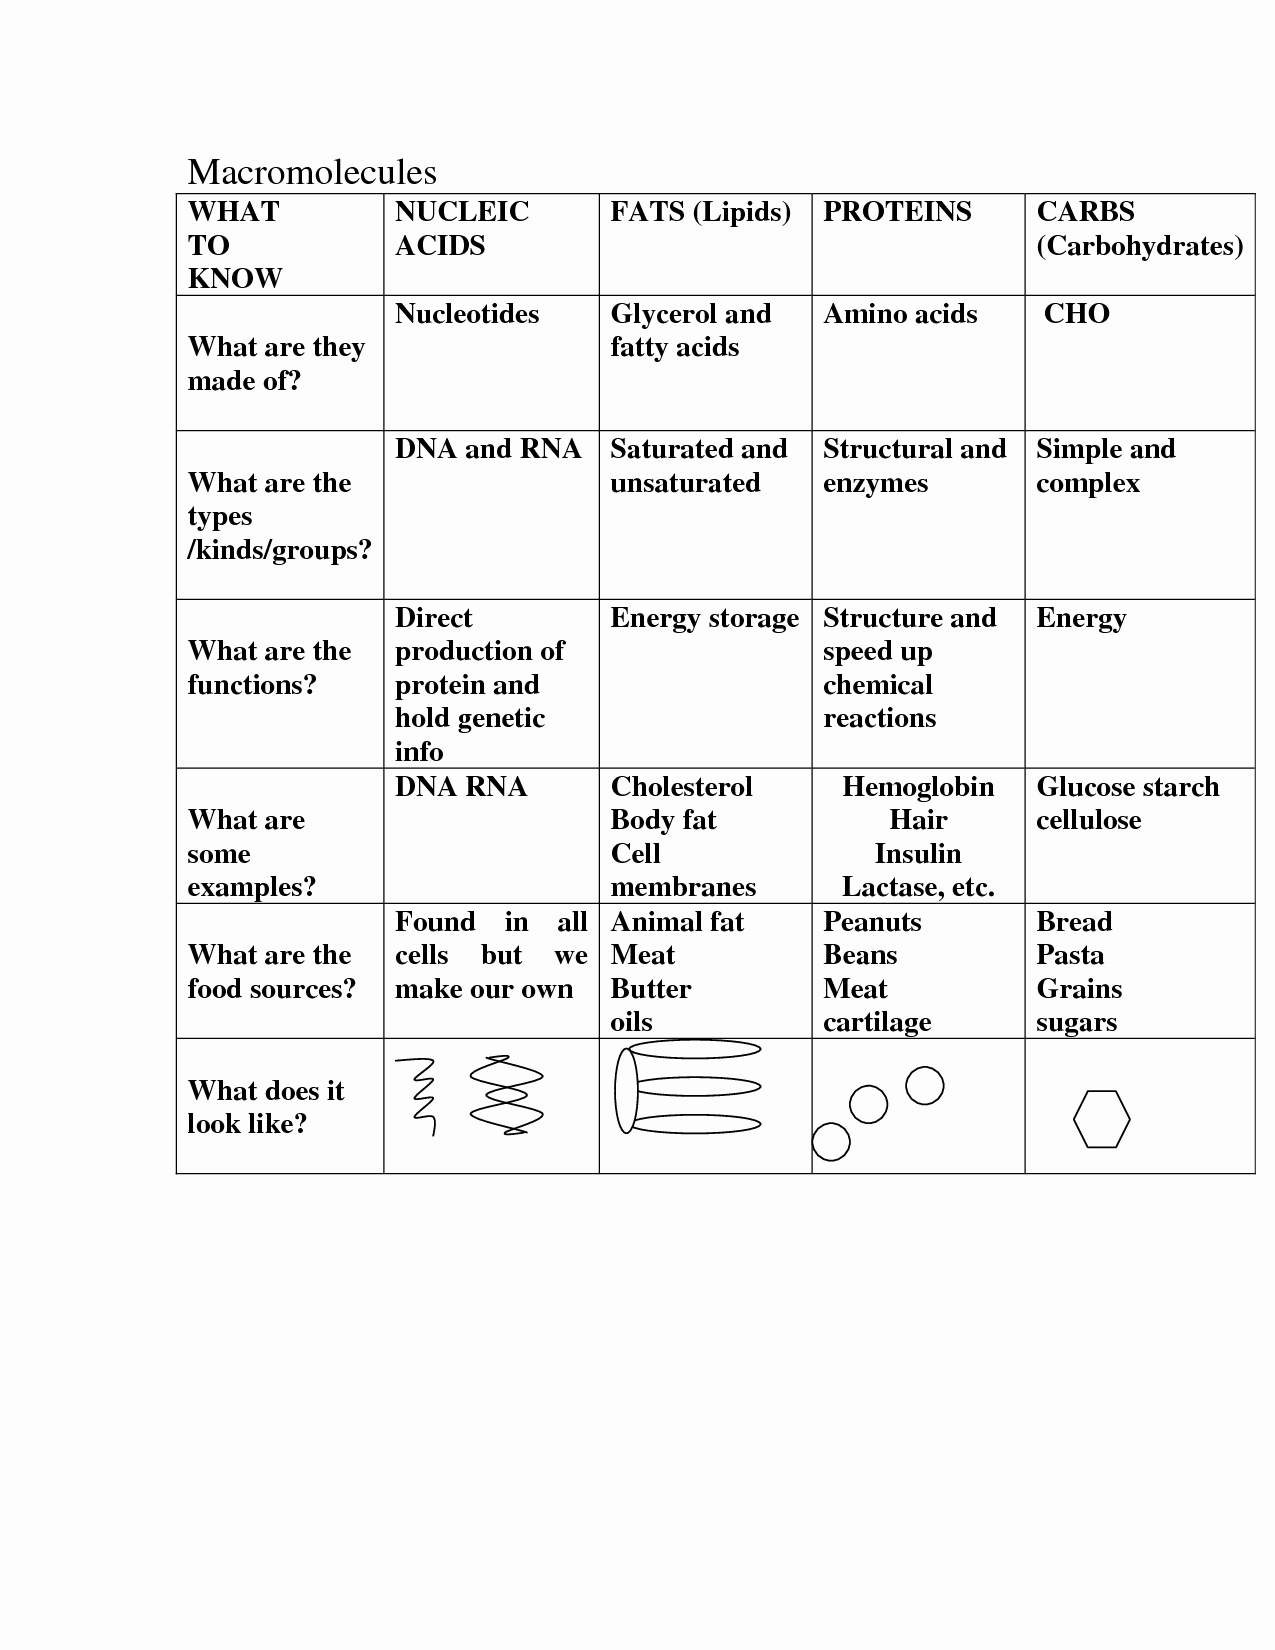 Macromolecules Worksheet High School Lovely 16 Best Of Carbohydrate Review Worksheet